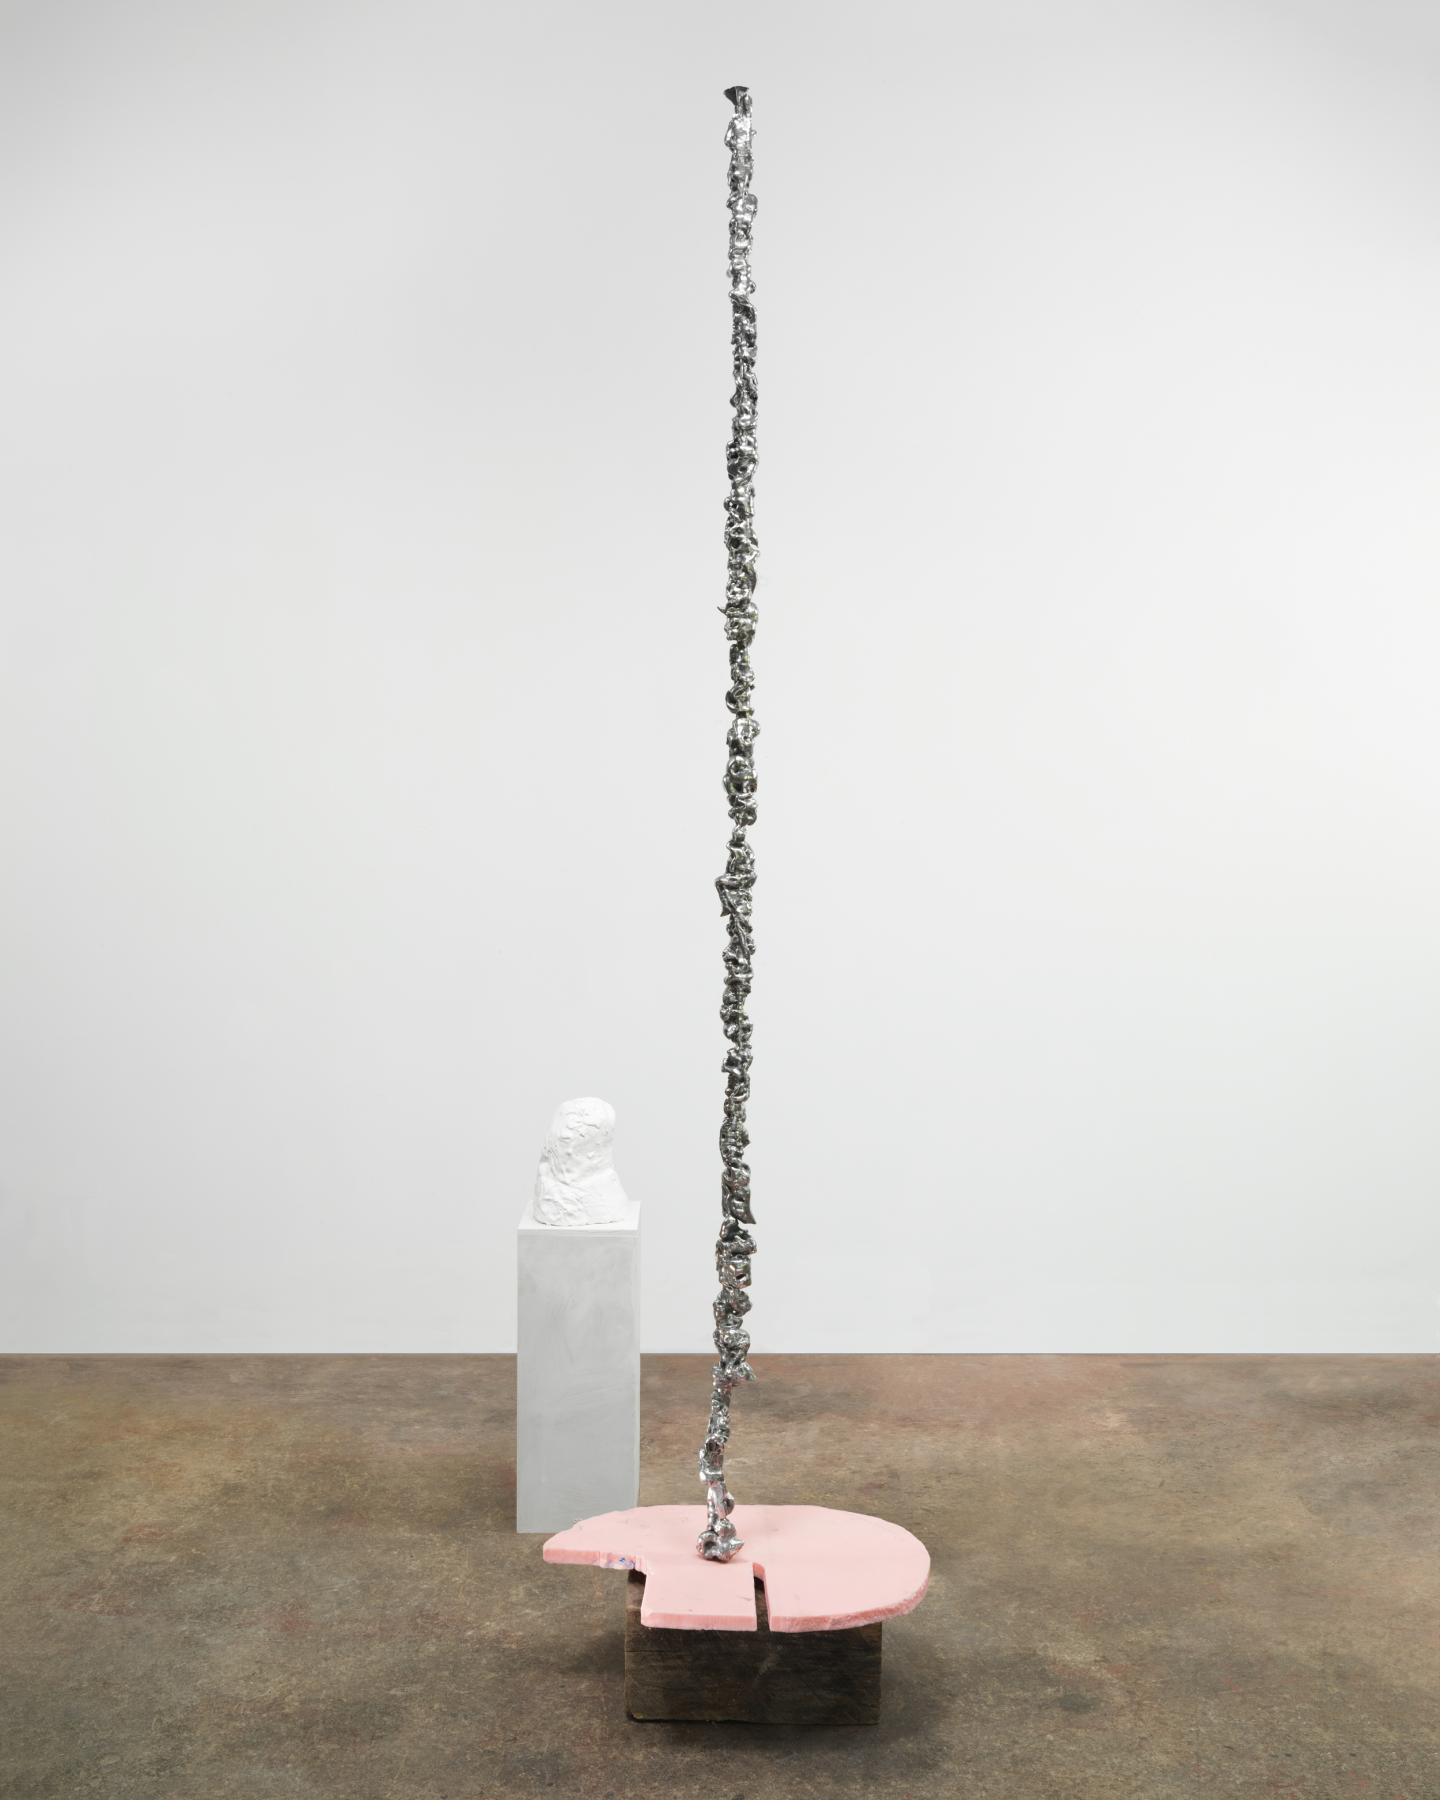 Mighty Love, 2013, Aluminum, plastic, wood, and plaster